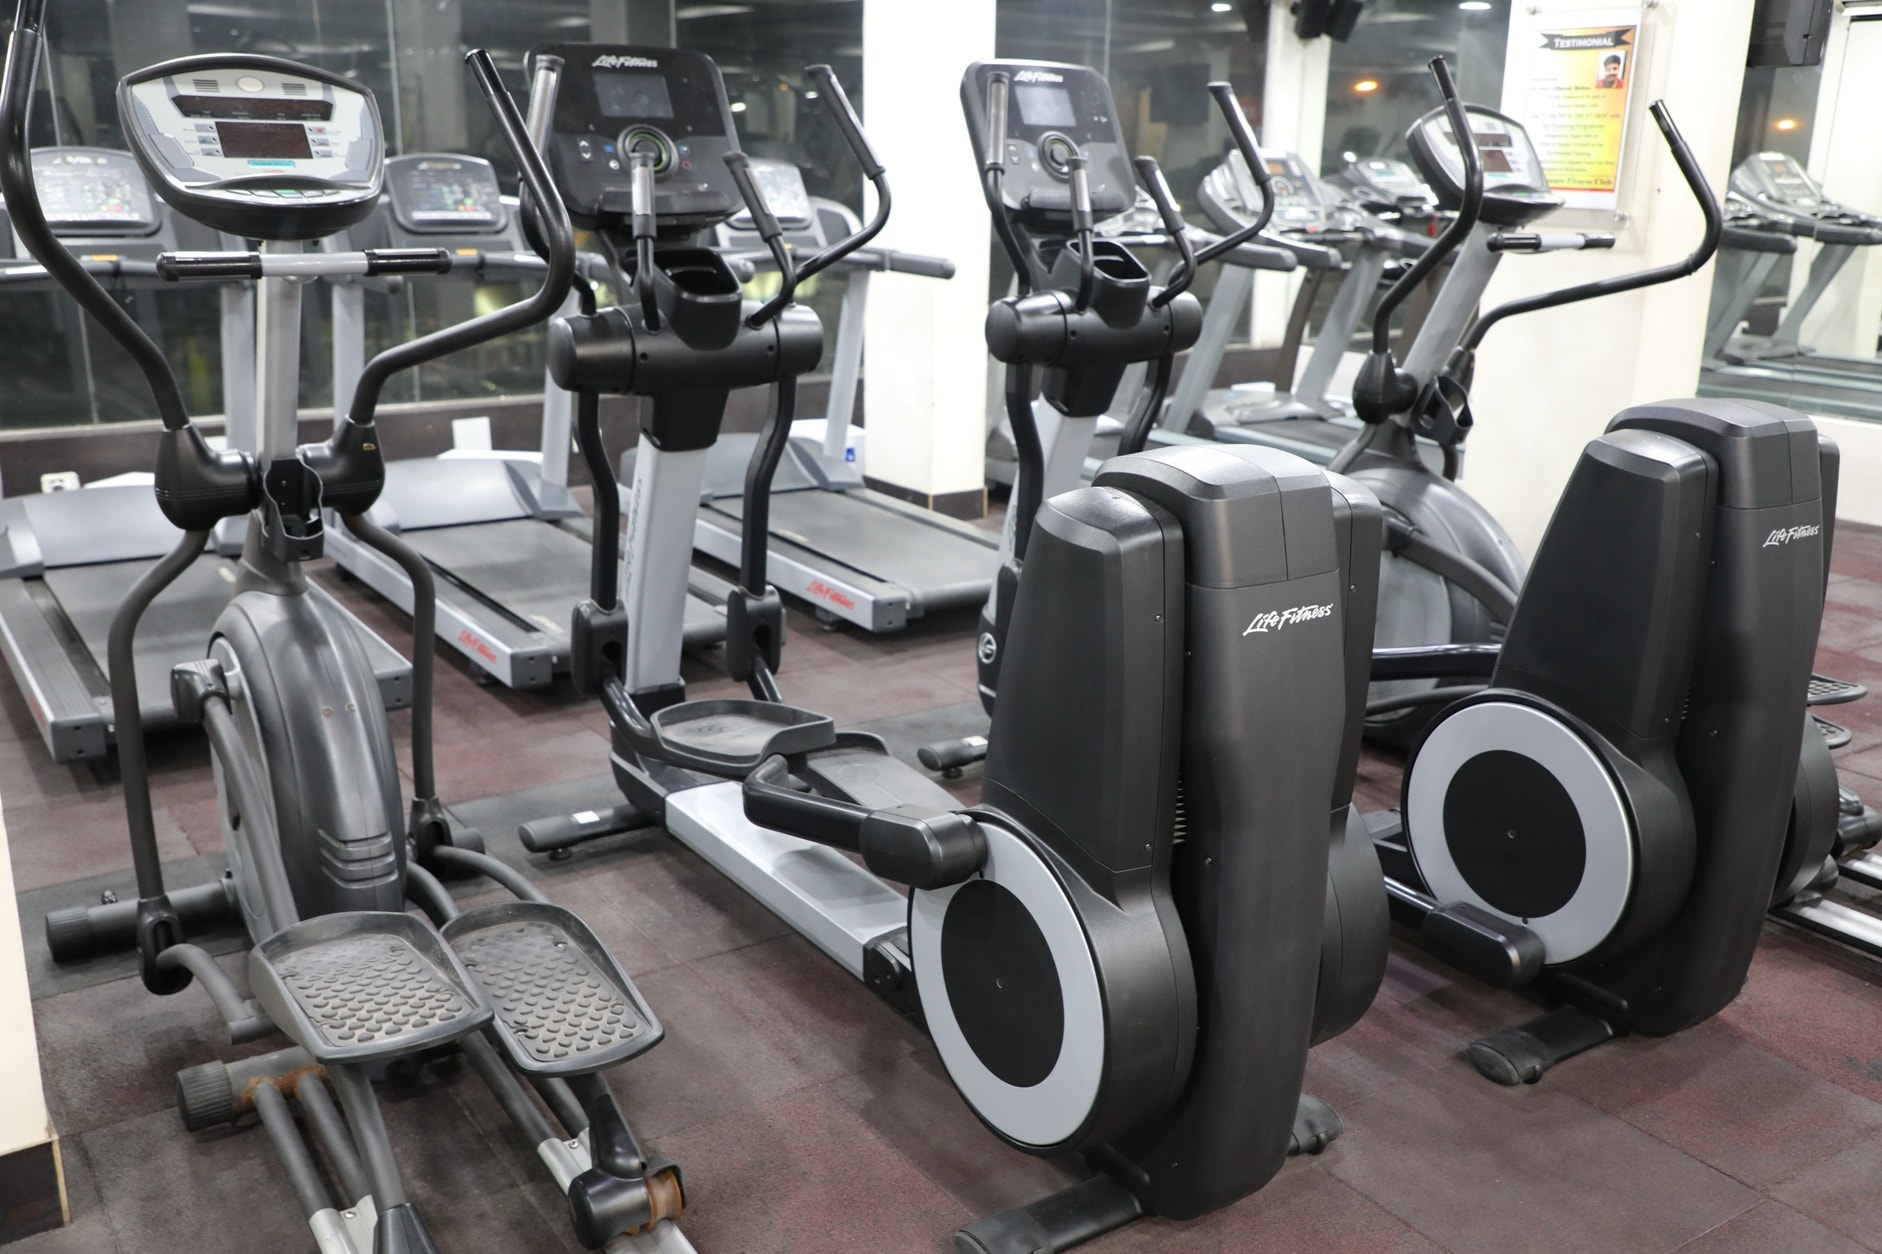 Cardio Equipment at S Square Fitness Club